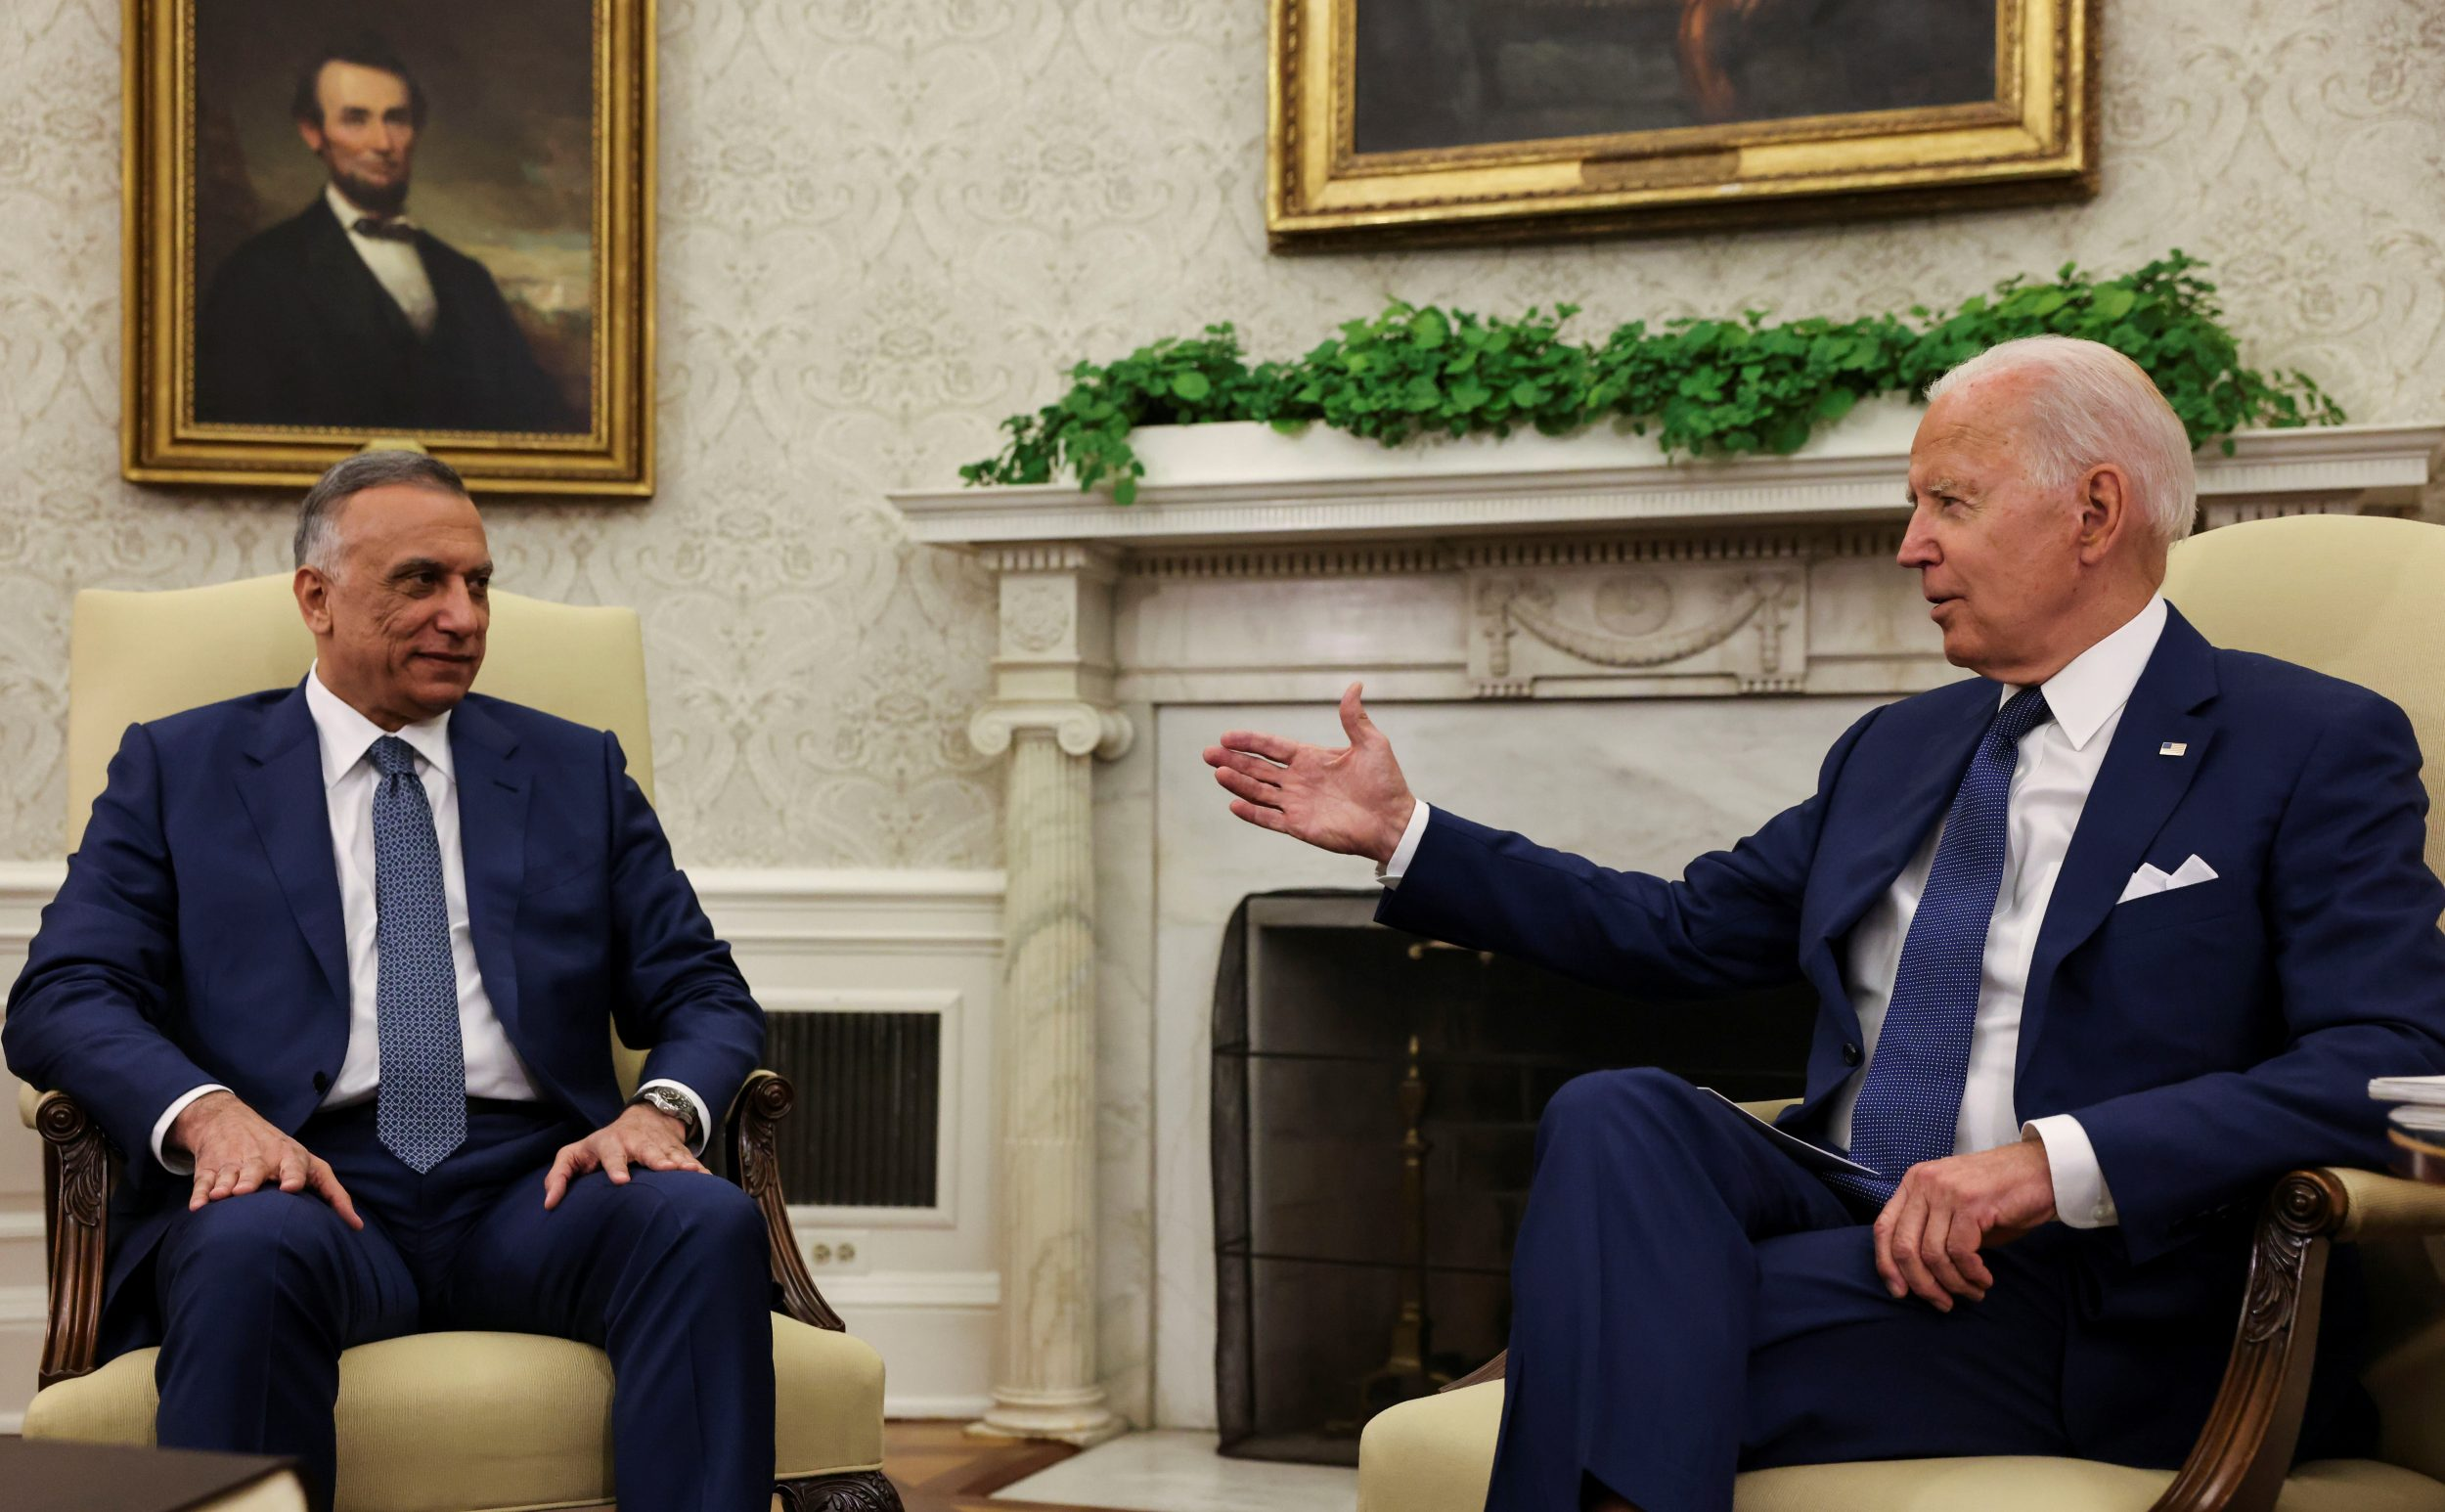 U.S. President Joe Biden SPEAKS with Iraq's Prime Minister Mustafa Al-Kadhimi during a bilateral meeting in the Oval Office at the White House in Washington, U.S., July 26, 2021. REUTERS/Evelyn Hockstein